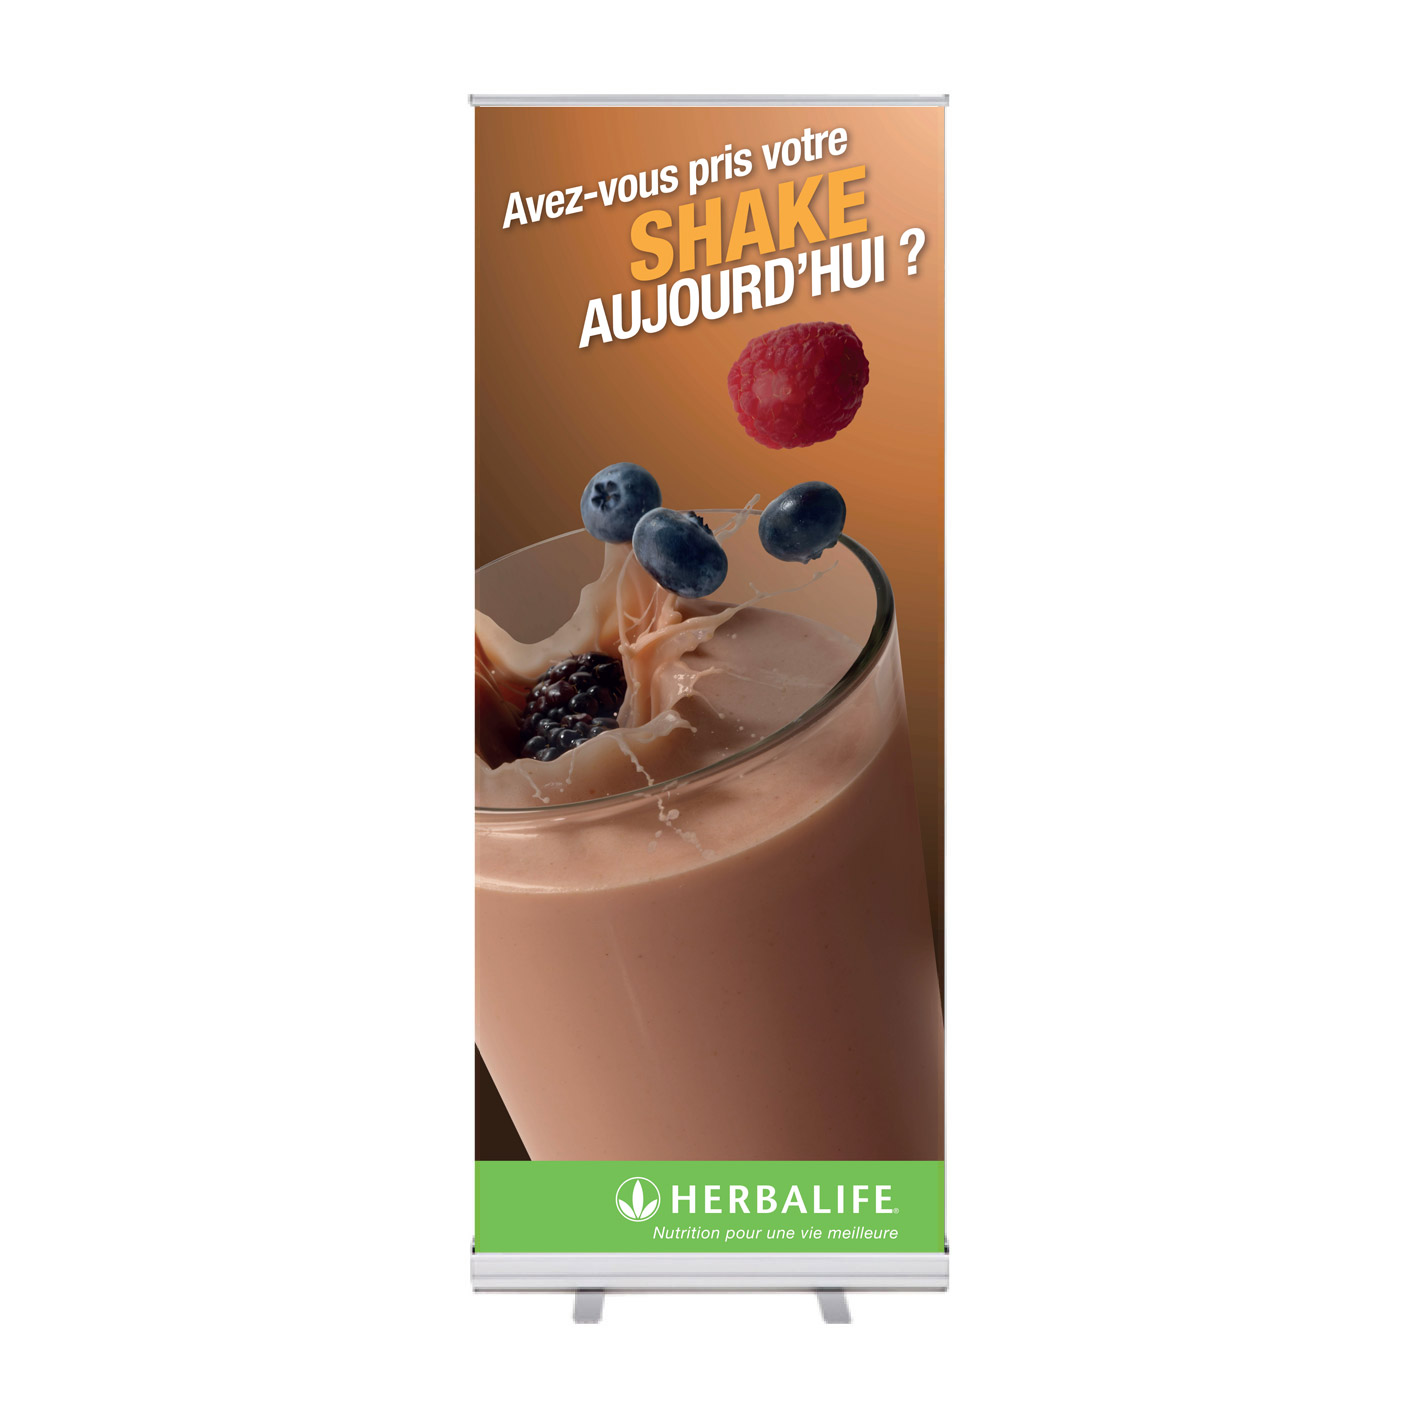 https://myshop.s3-external-3.amazonaws.com/shop4547200.pictures.Roll-Up-Herbalife-Shake-Bosvruchten-FR.jpg